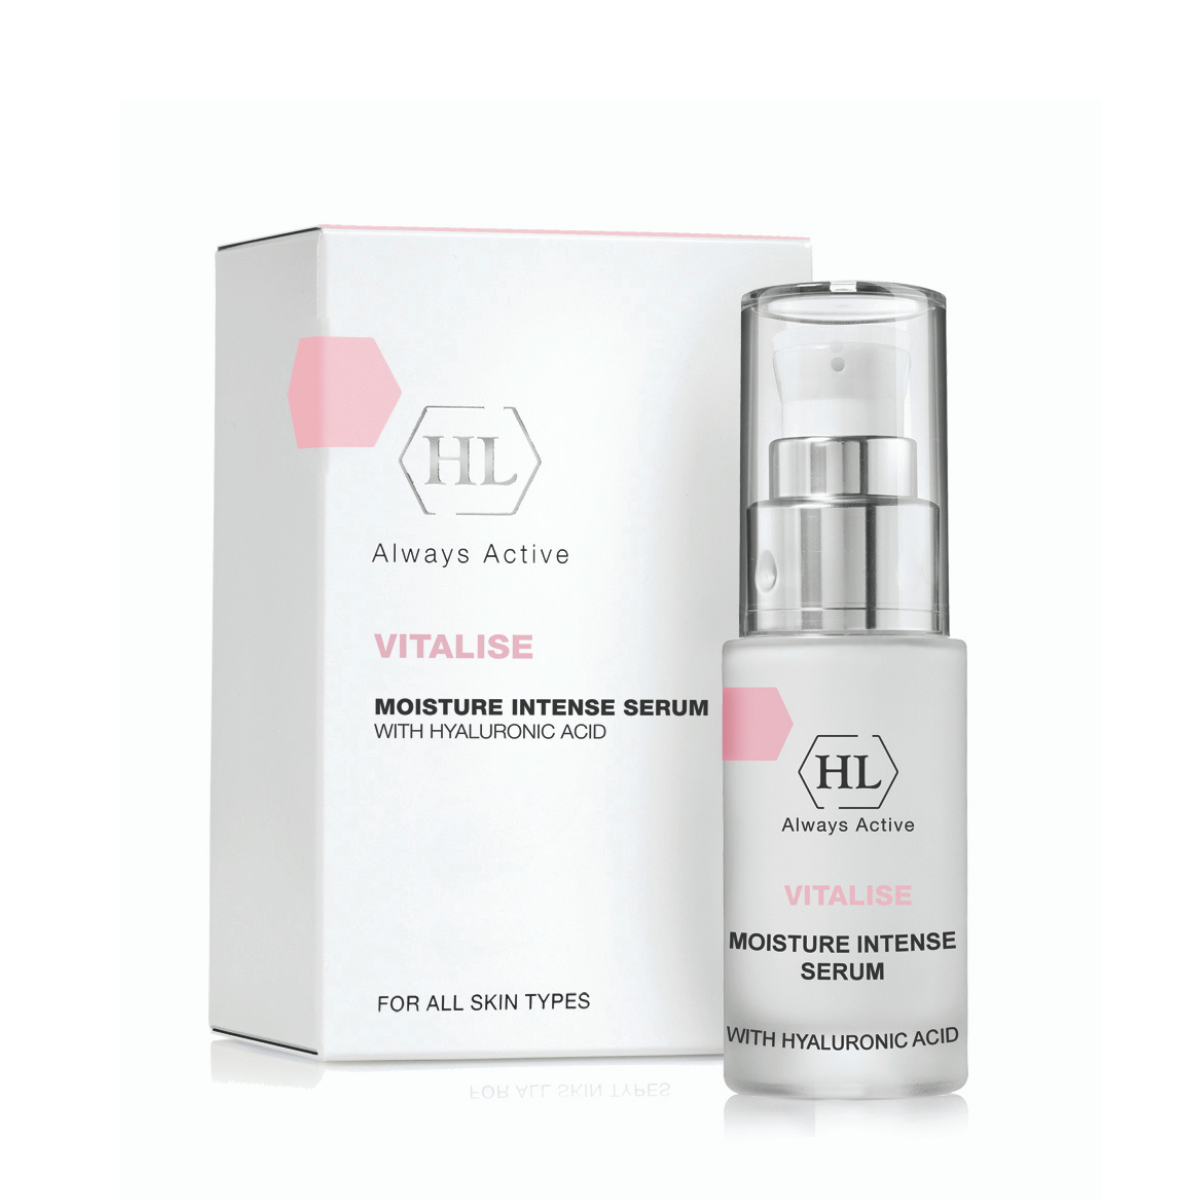 Holy Land Moisture Intense Serum | Vitalise